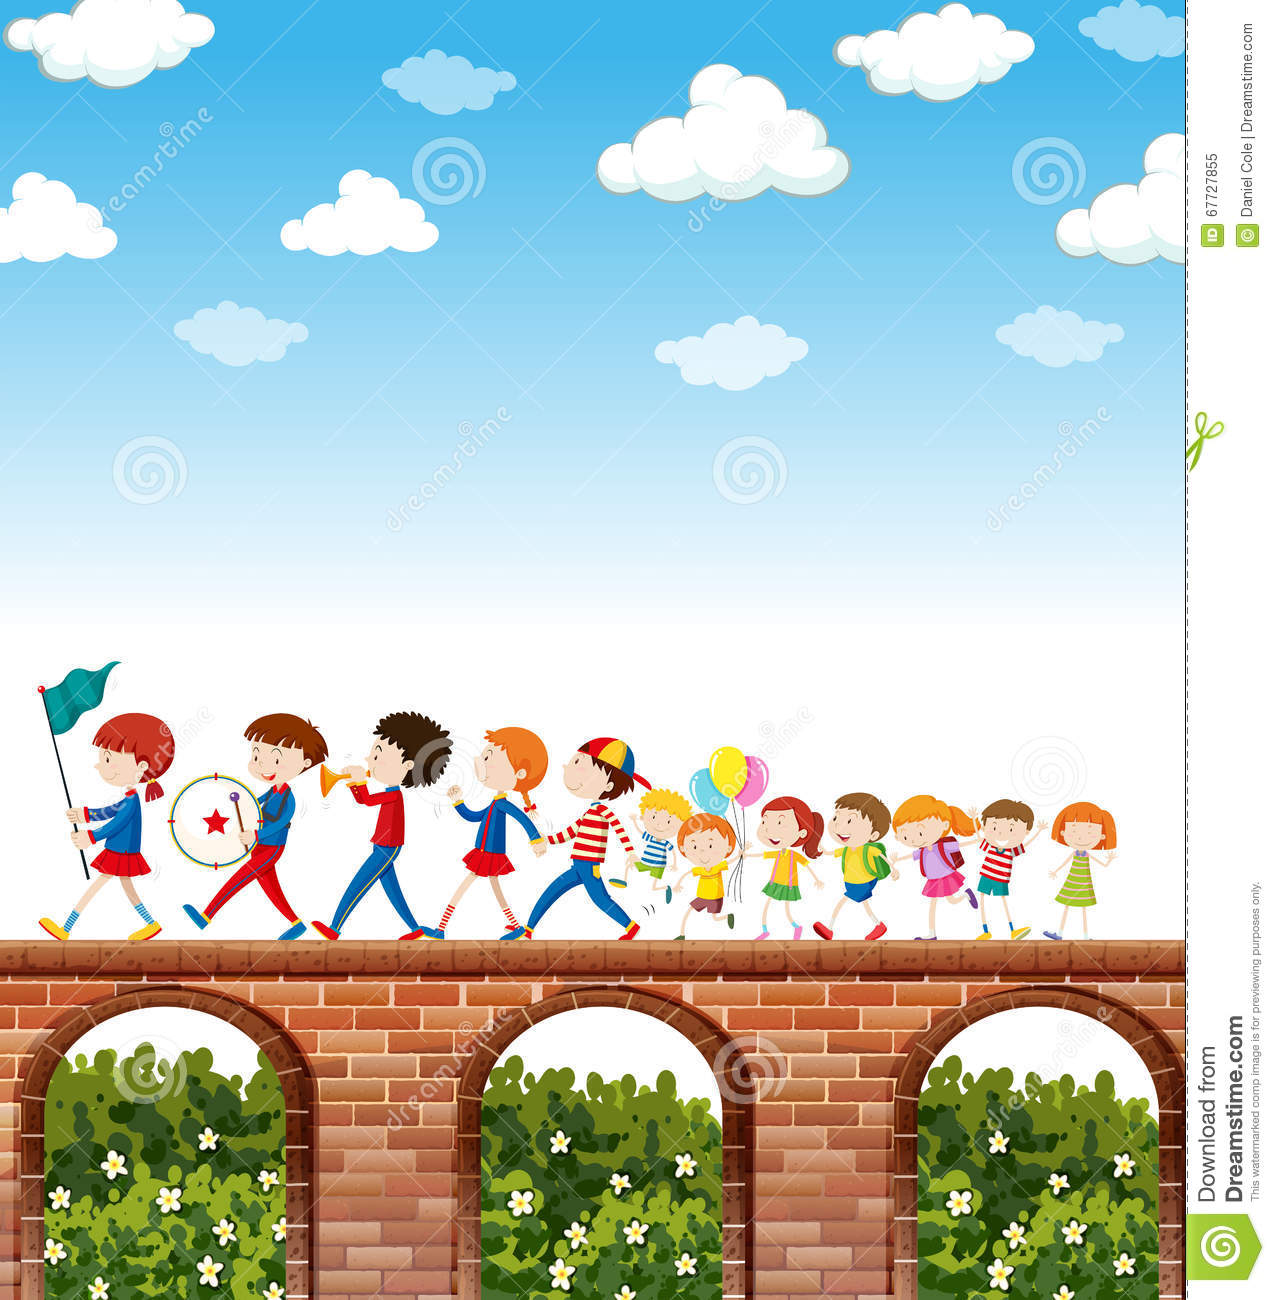 Children Marching On The Bridge Stock Vector.